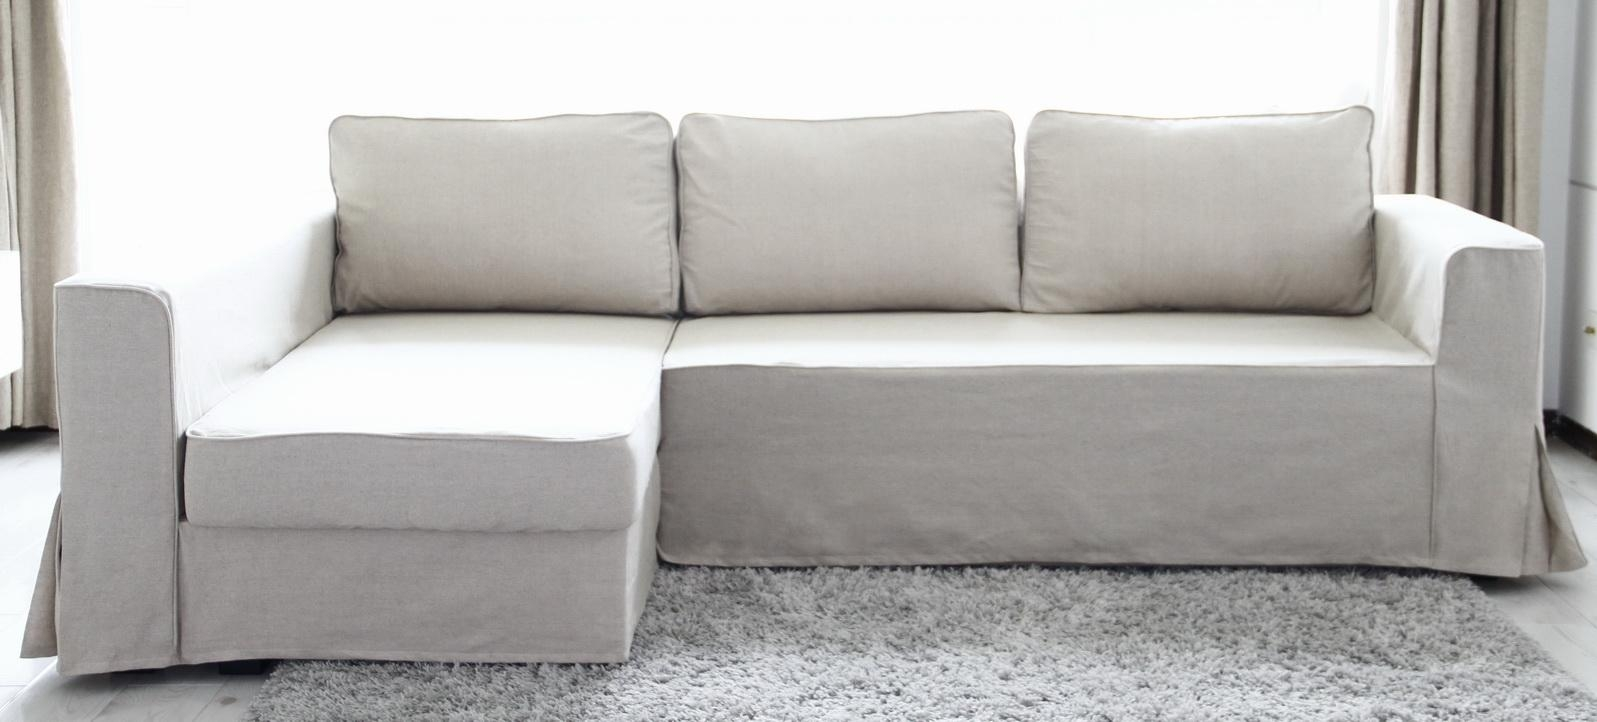 one seat sofa bed ikea score live 20 top manstad with storage from | ideas